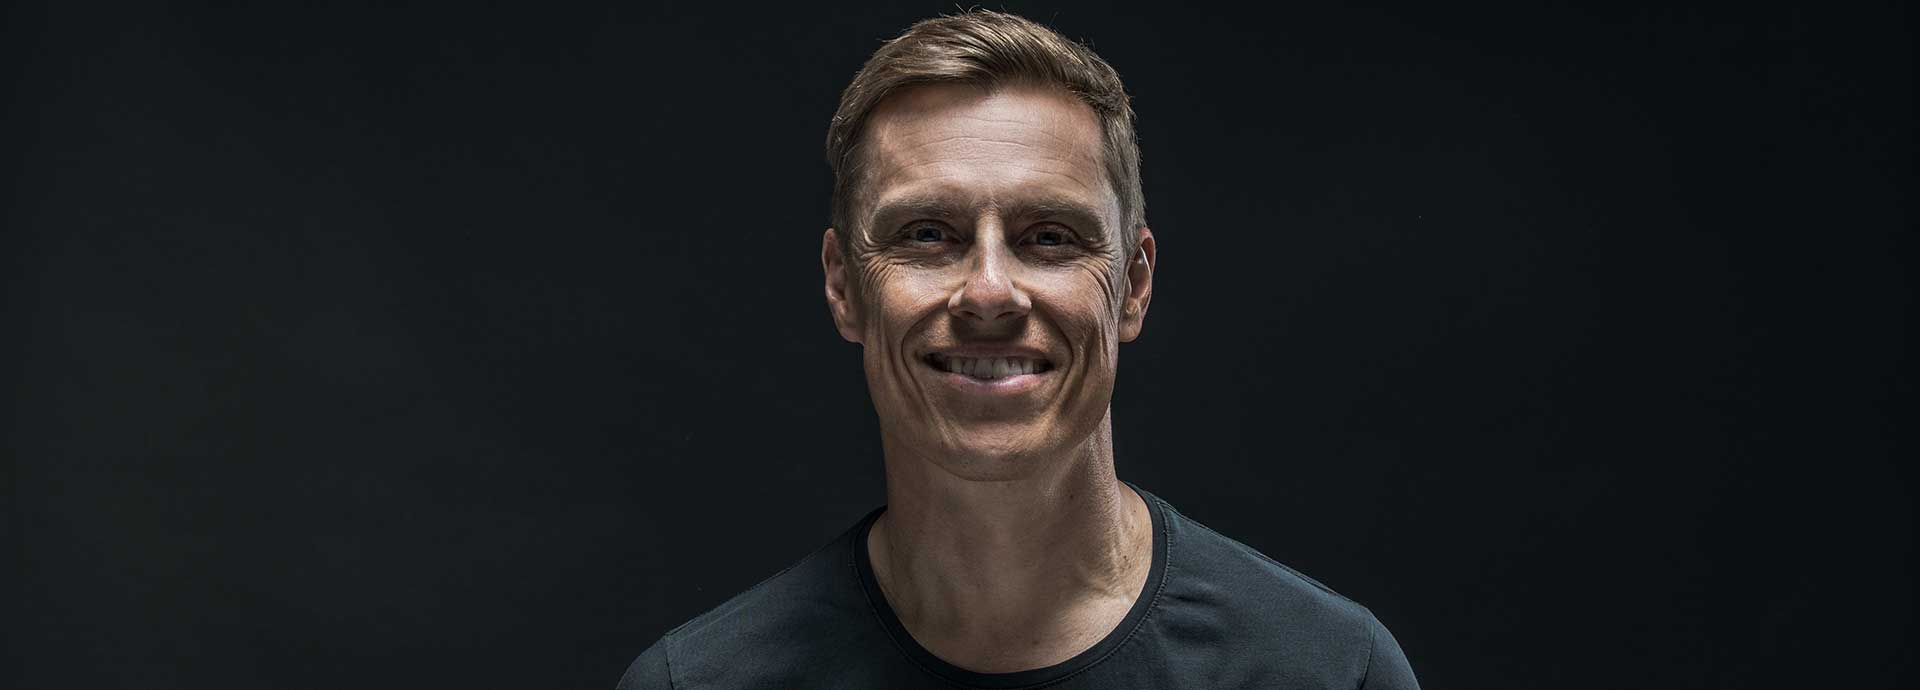 A candid chat with Alexander Stubb